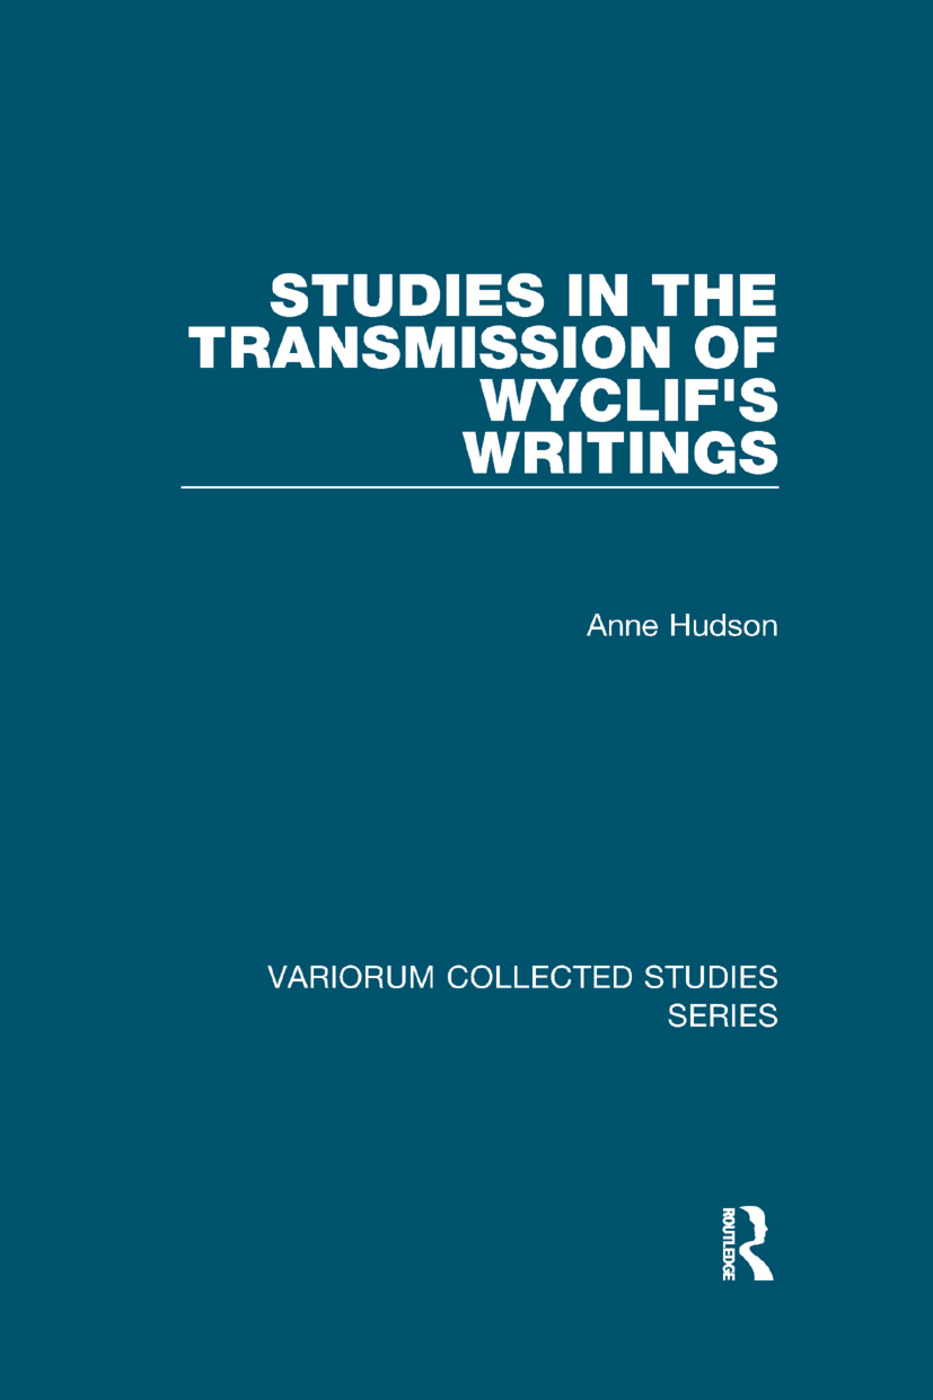 Studies in the Transmission of Wyclif's Writings book cover